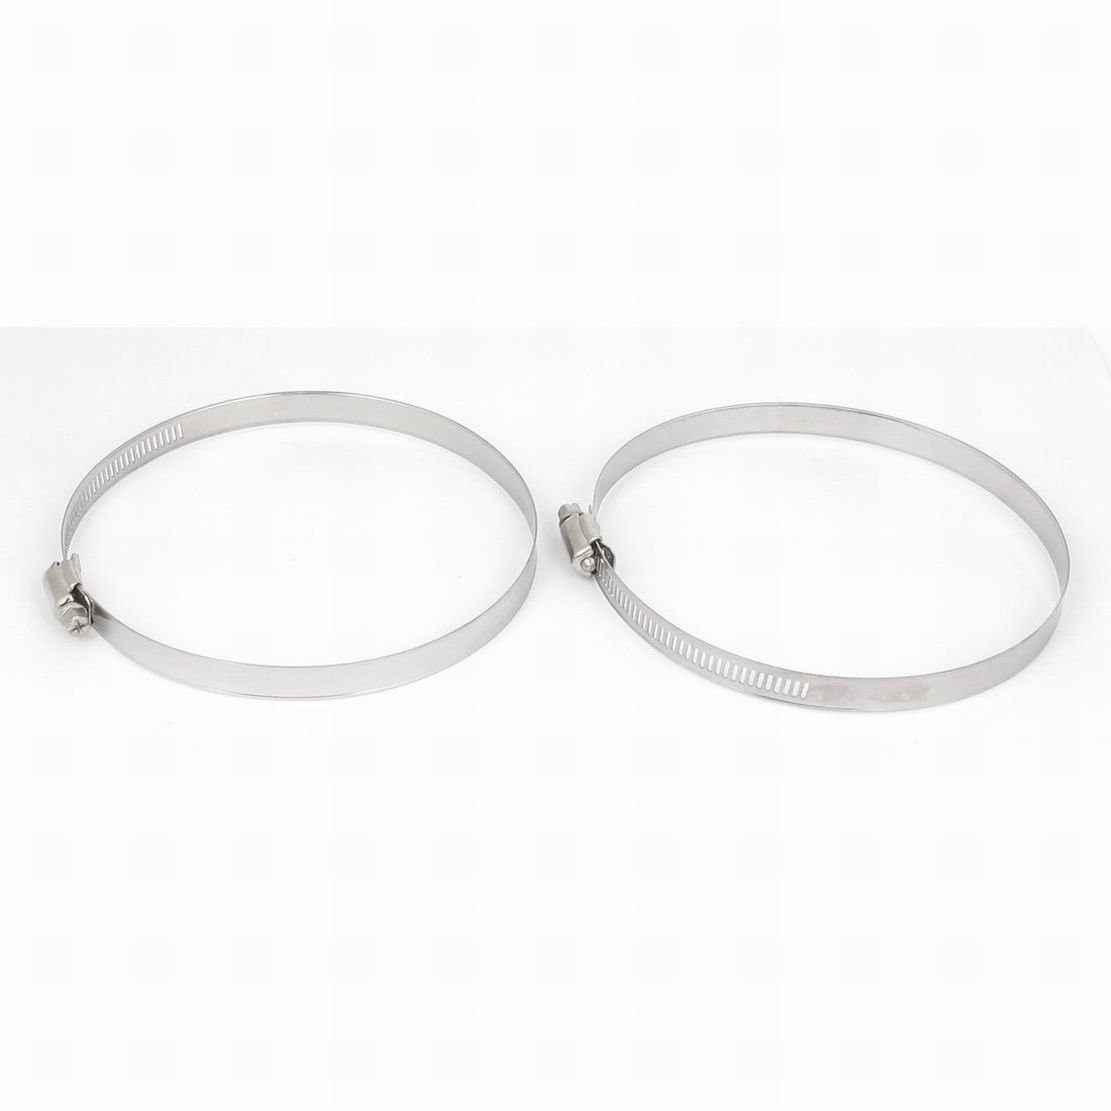 Ucland 120mm to 140mm Range Stainless Steel Hose Pipe Clamp Hoop 2pcs